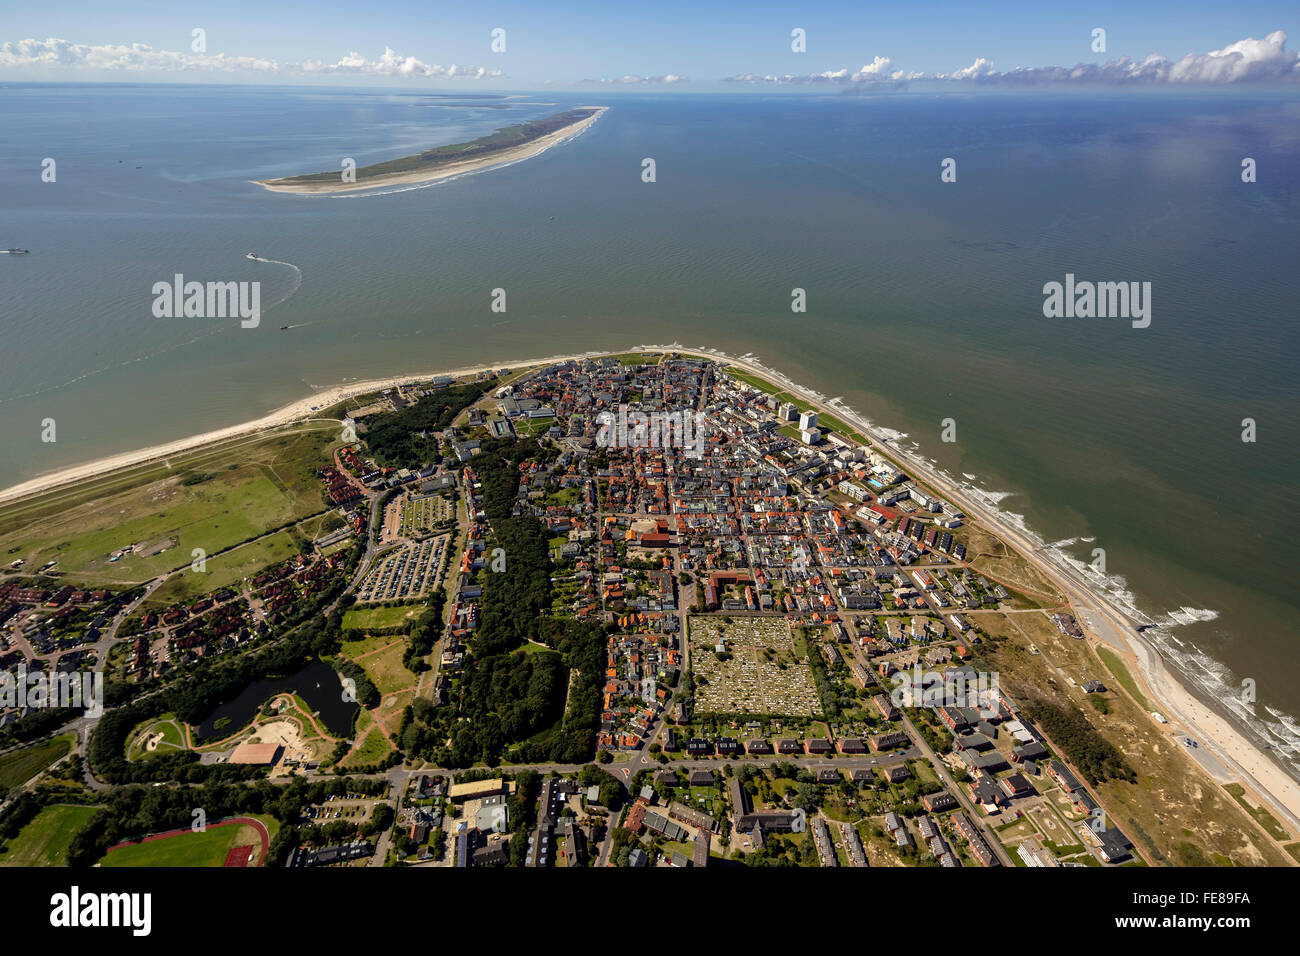 Place Norderney, West Island, aerial view, Norderney, North Sea, North Sea island, East Frisian Islands, Lower Saxony, Stock Photo